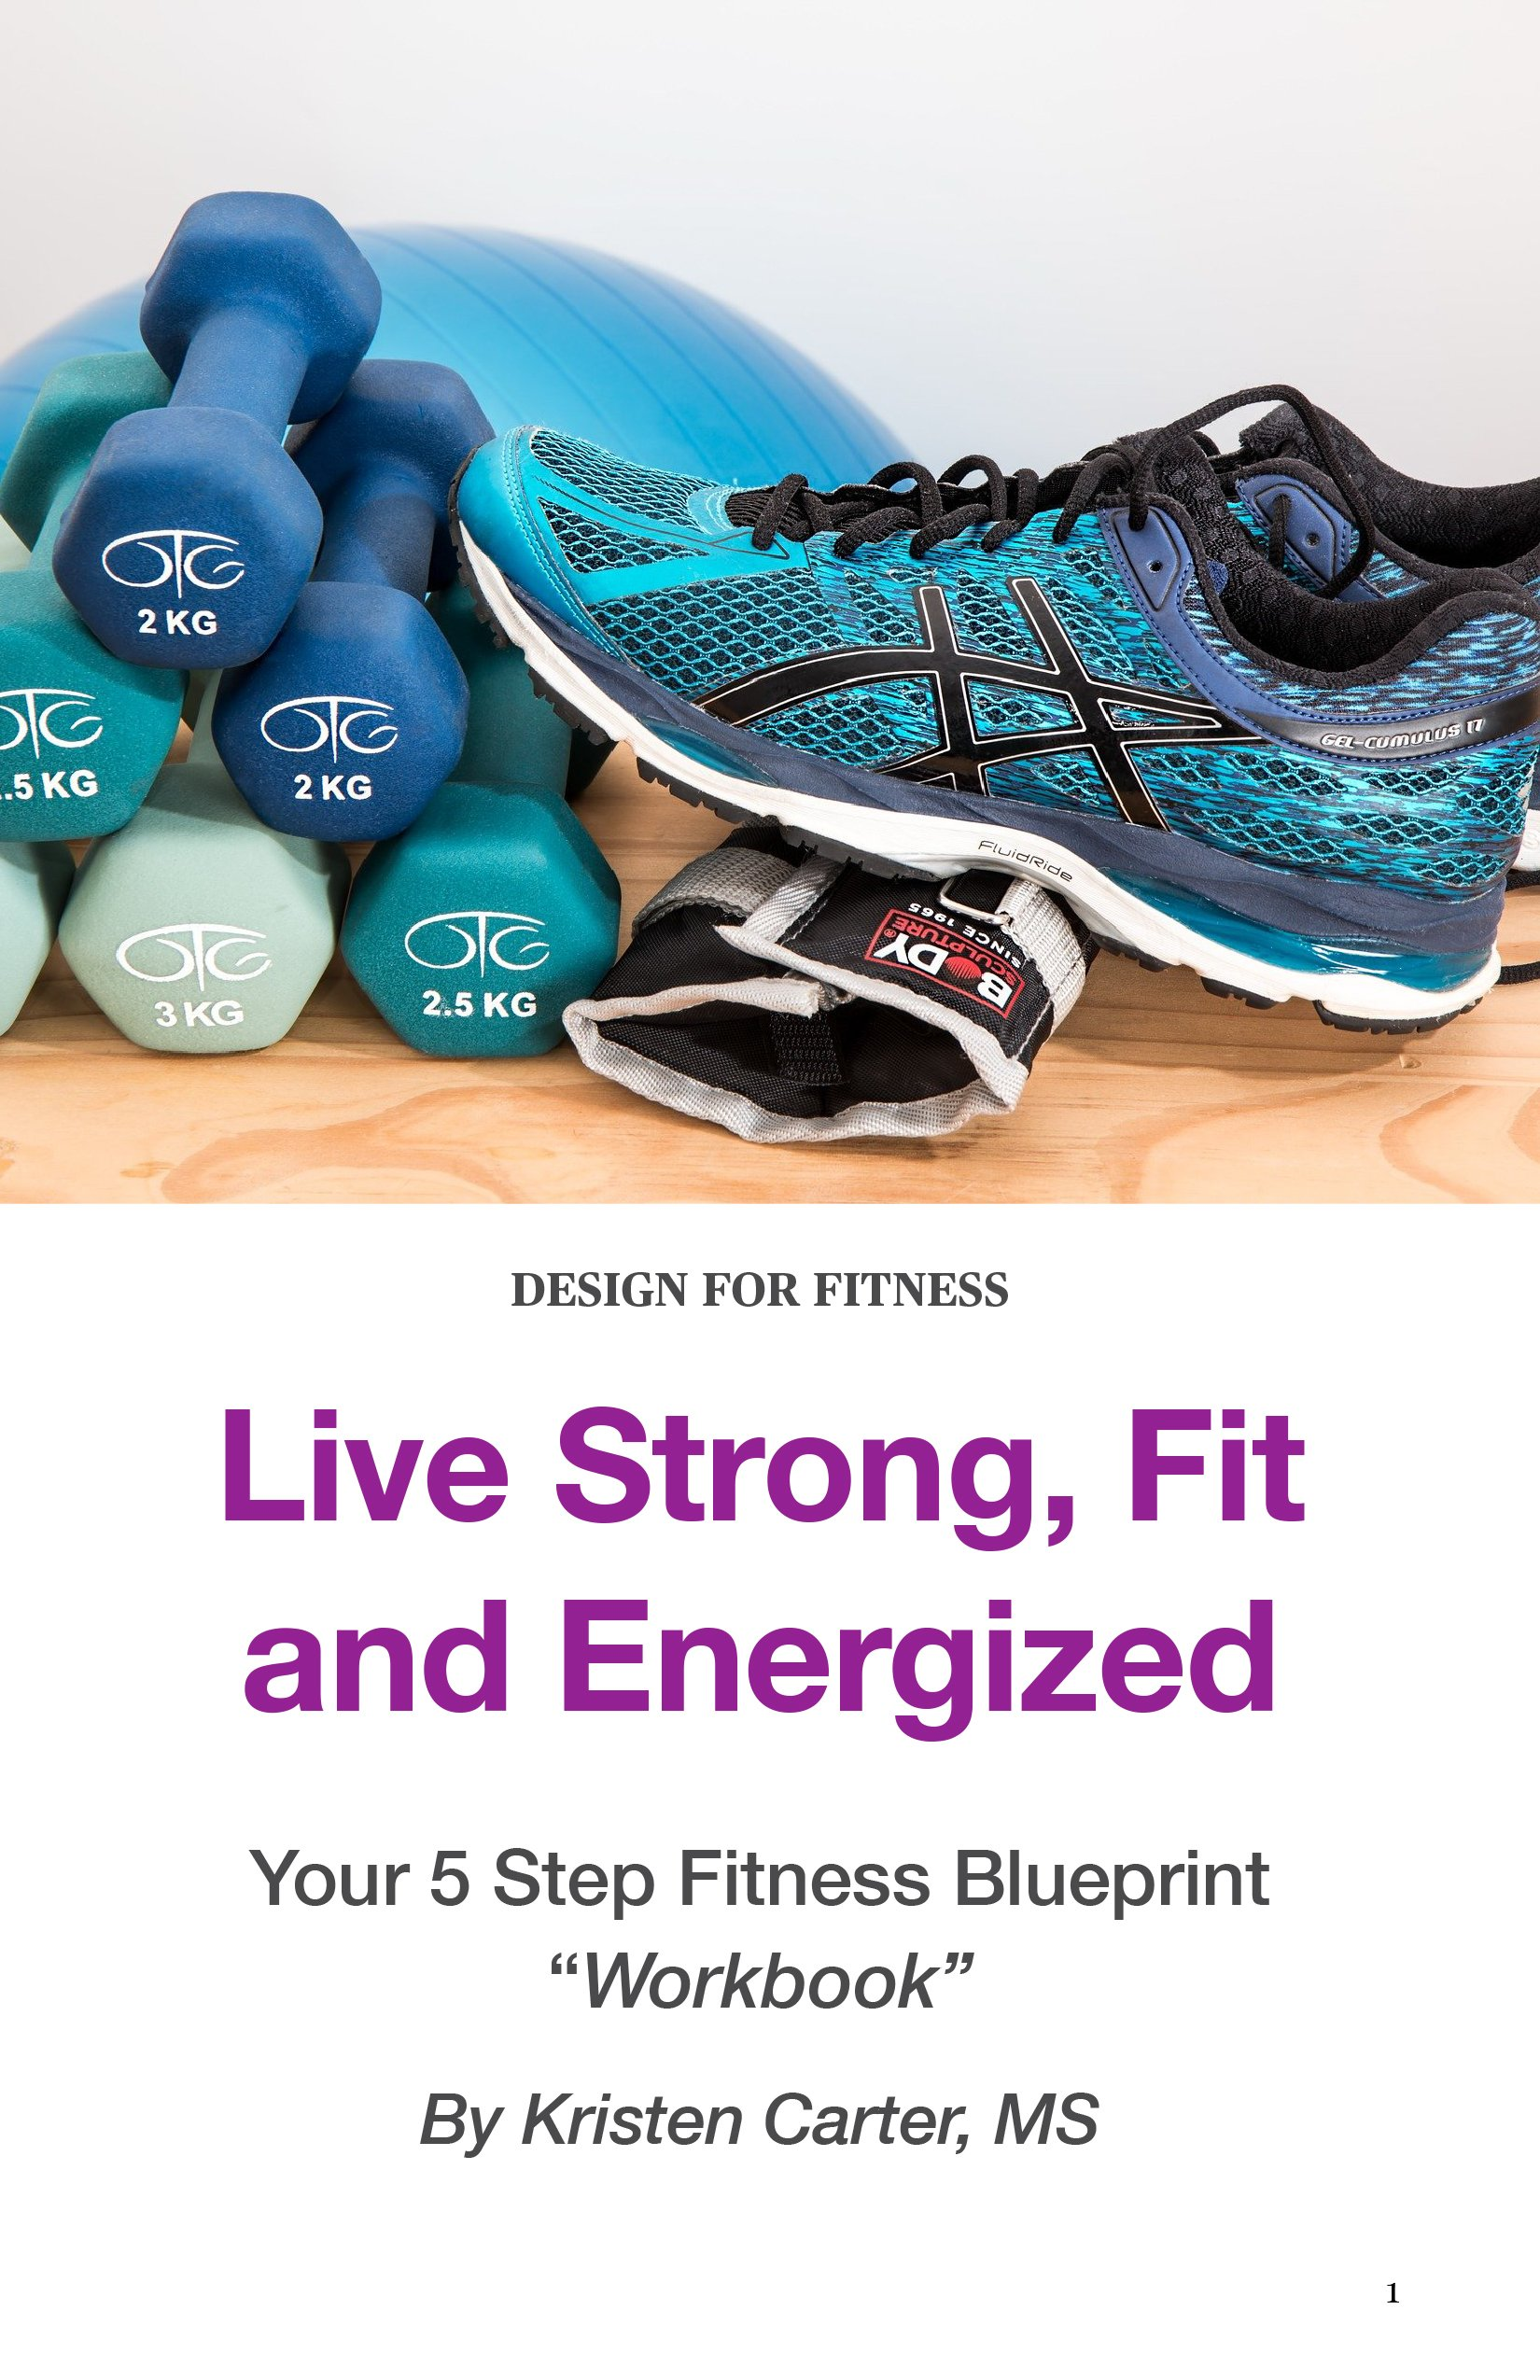 Your 5 Step Fitness Blueprint Workbook